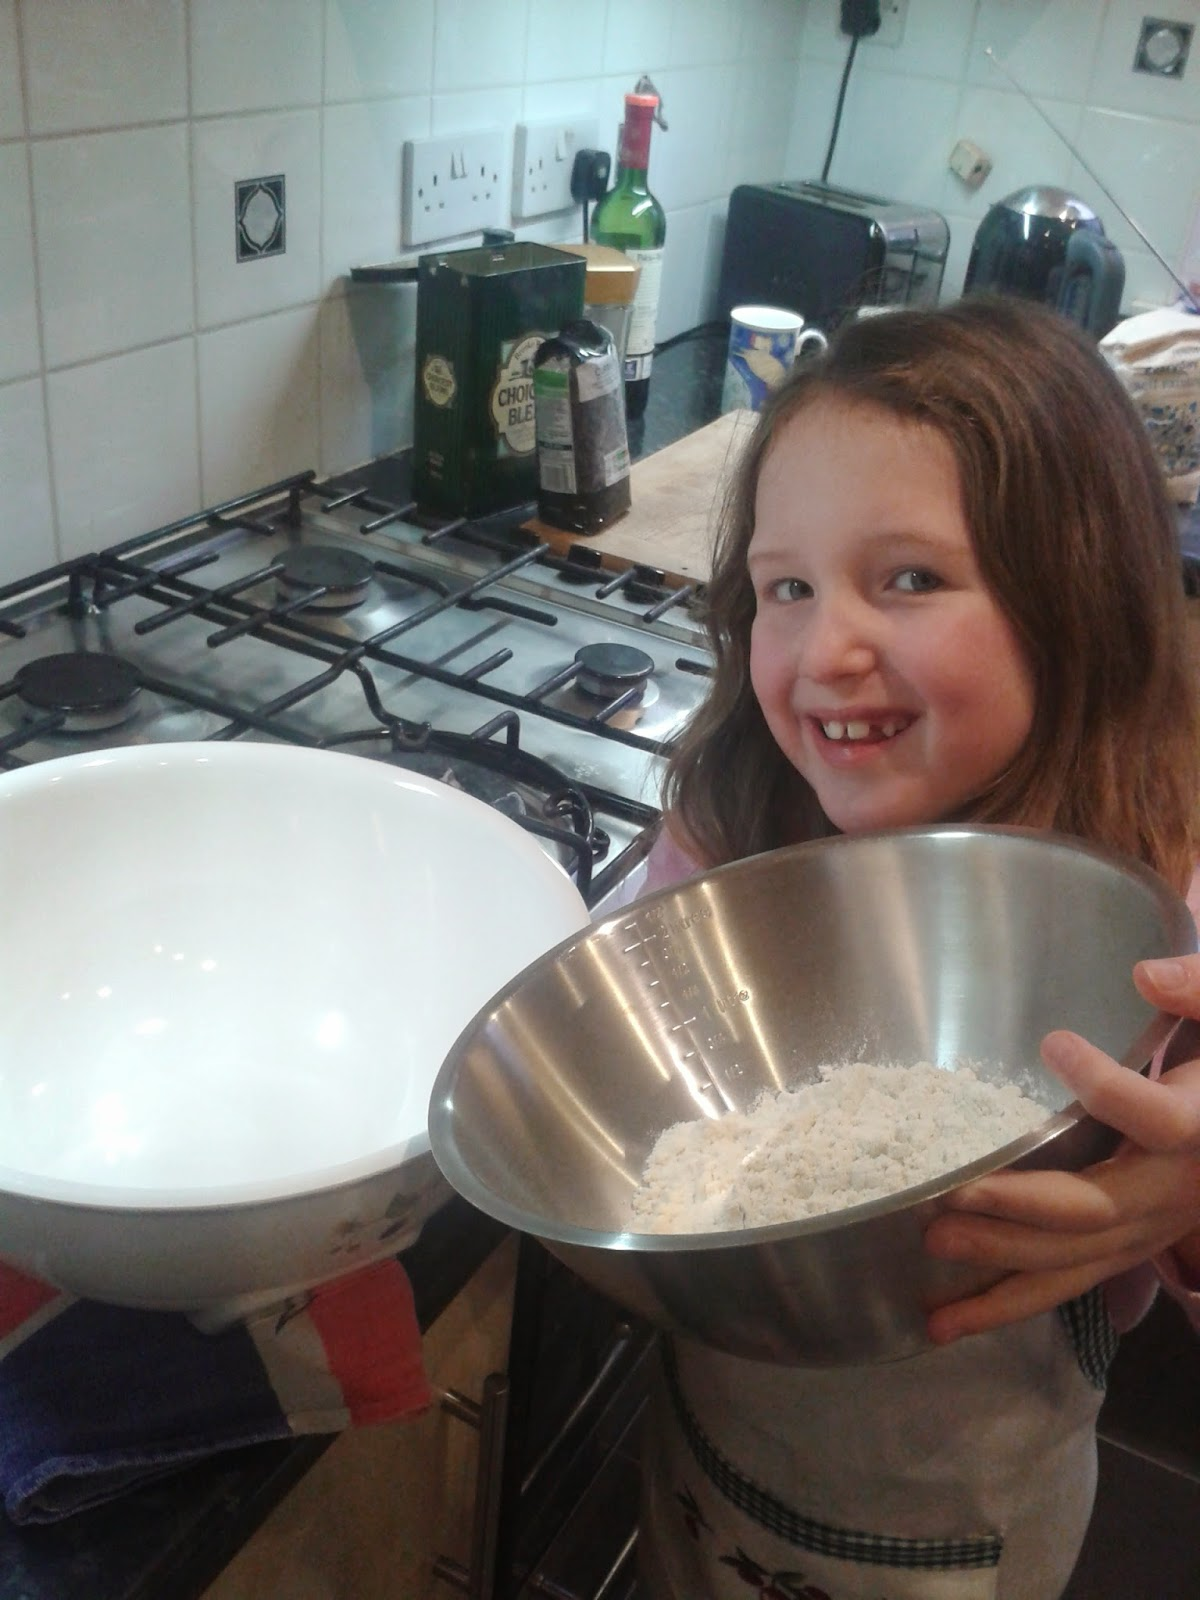 Welsh cakes recipe - Caitlin tipping flour into a mixing bowl